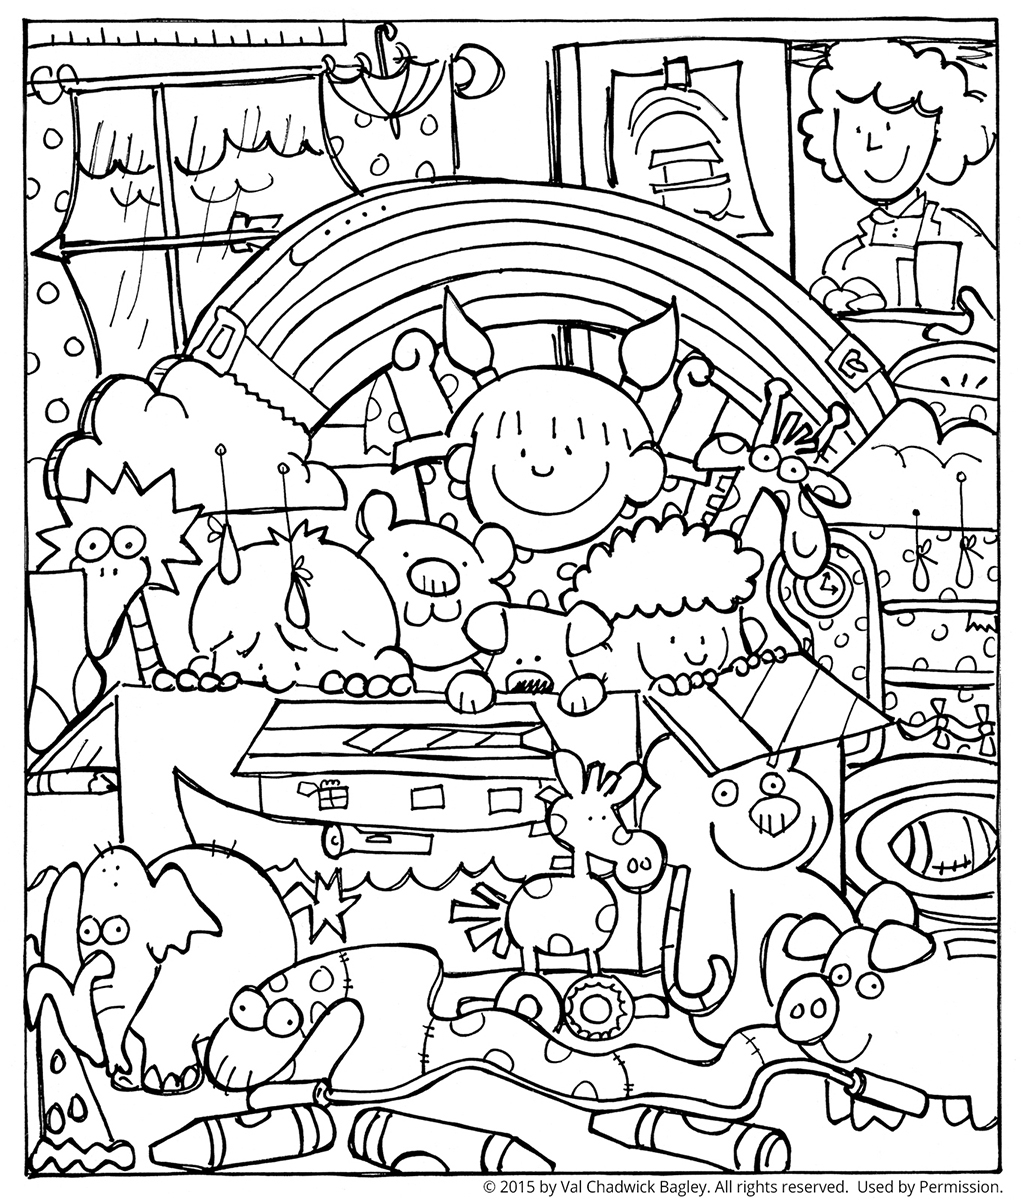 noah and the ark coloring pages - children playing noah ark lang=eng